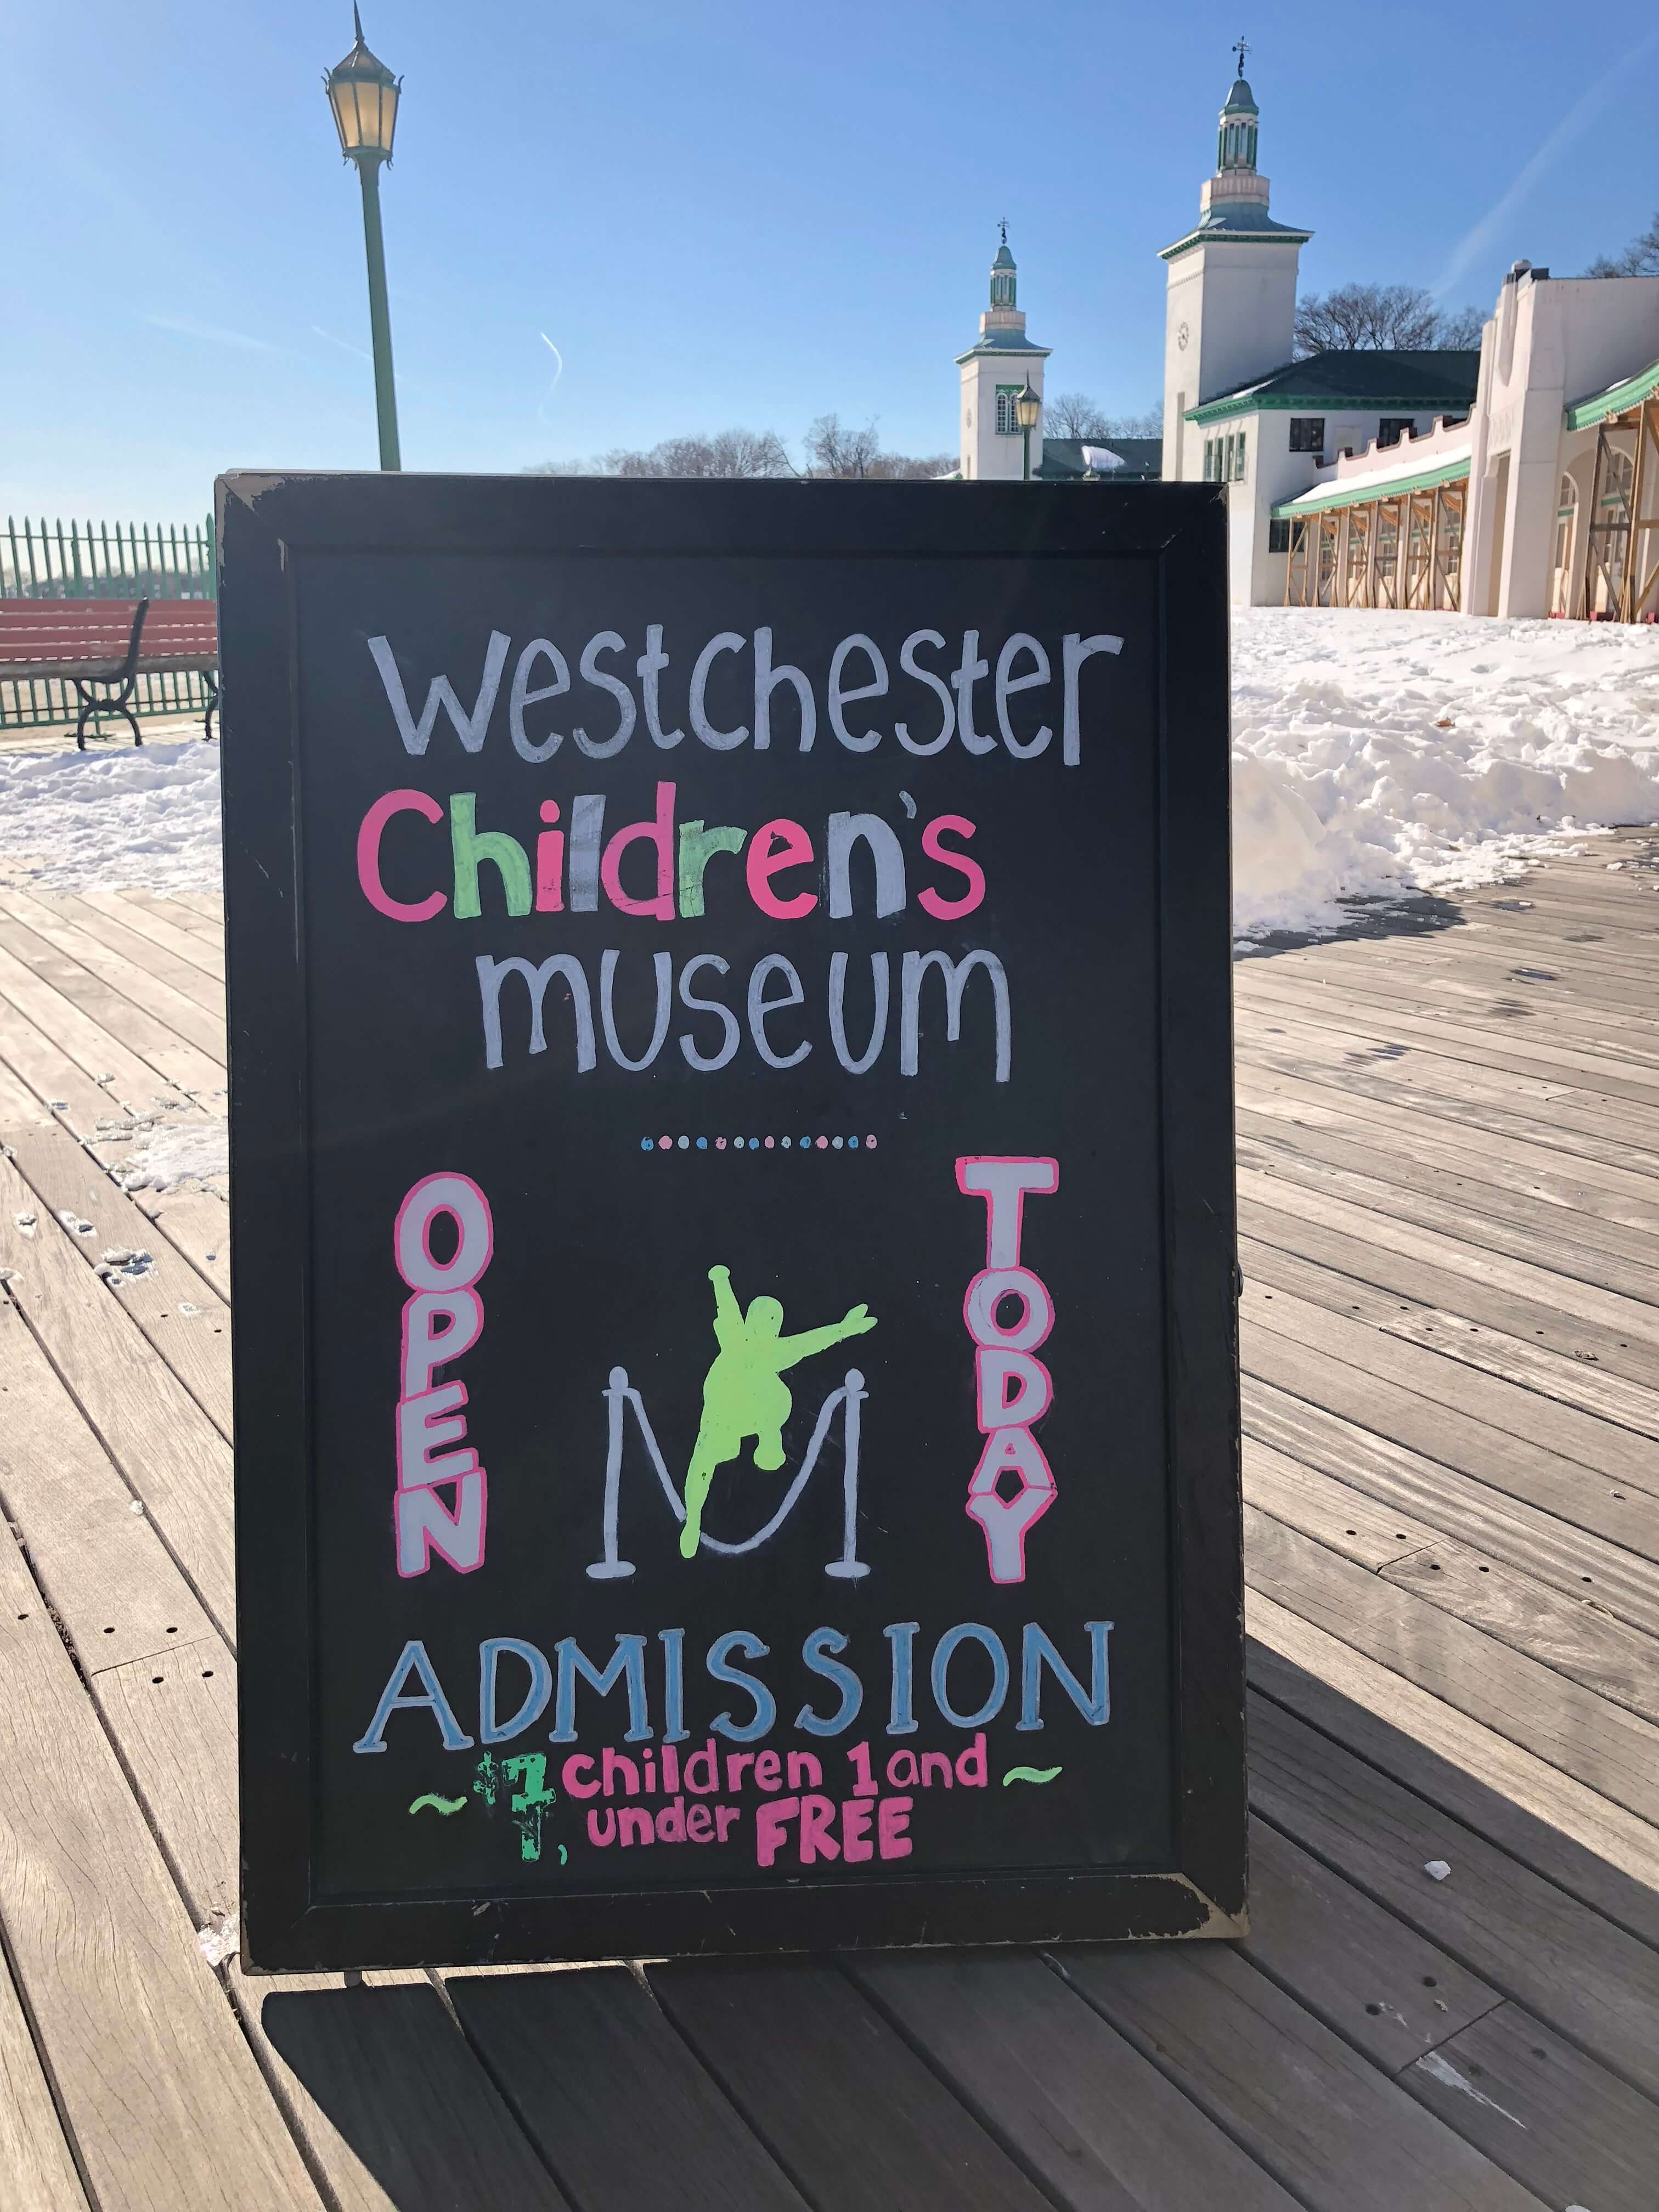 Westchester Children's Museum: What to Check Out